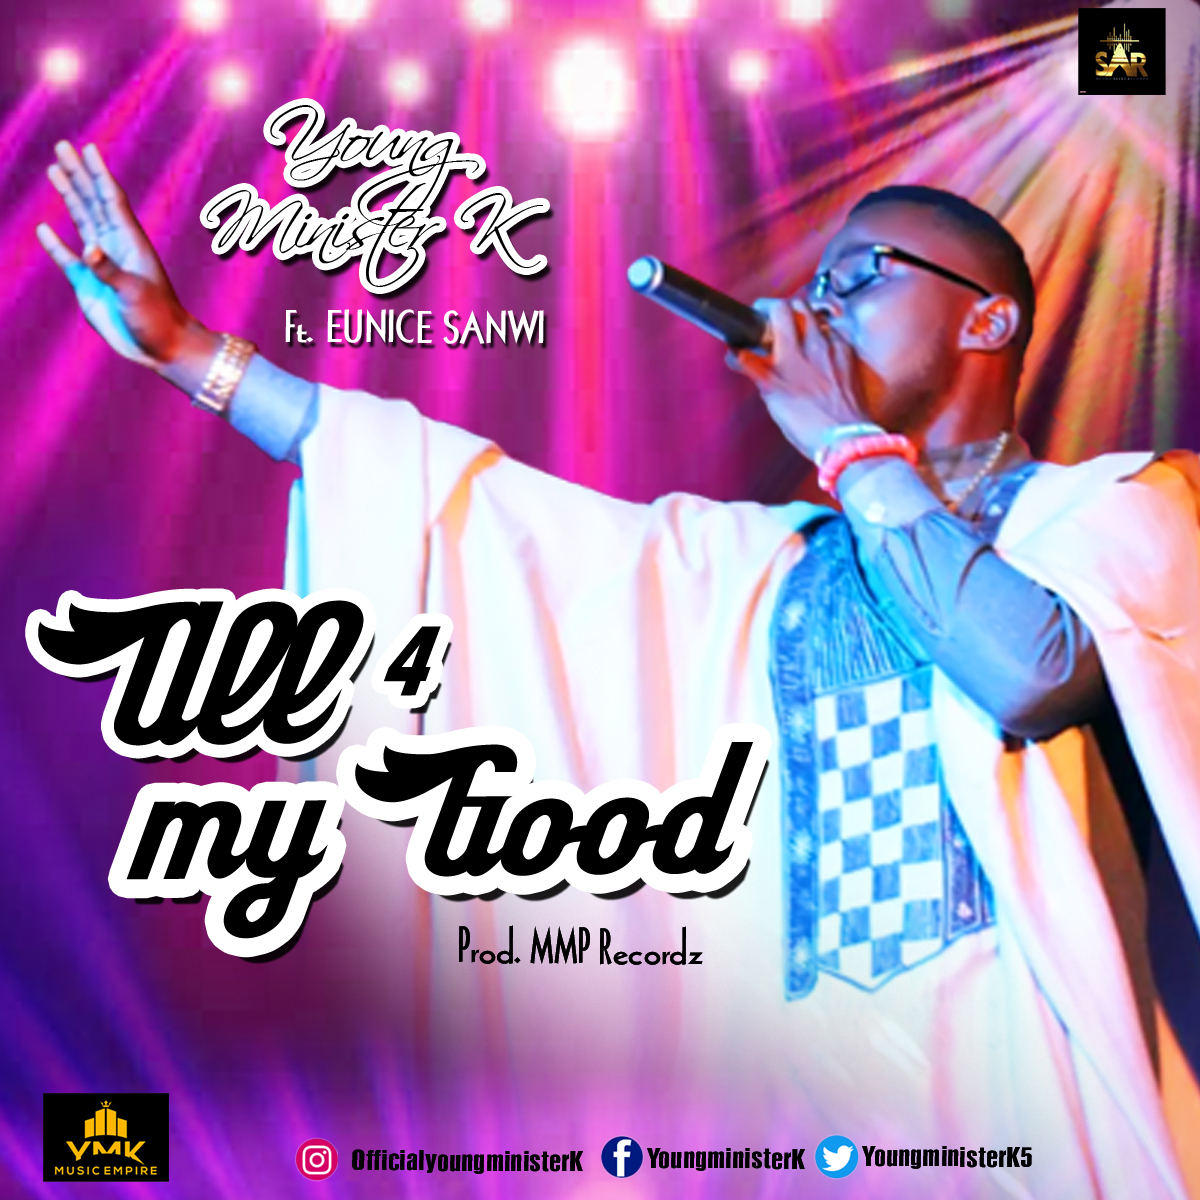 Young Minister K ft. Eunice Sanwi - All for My Good